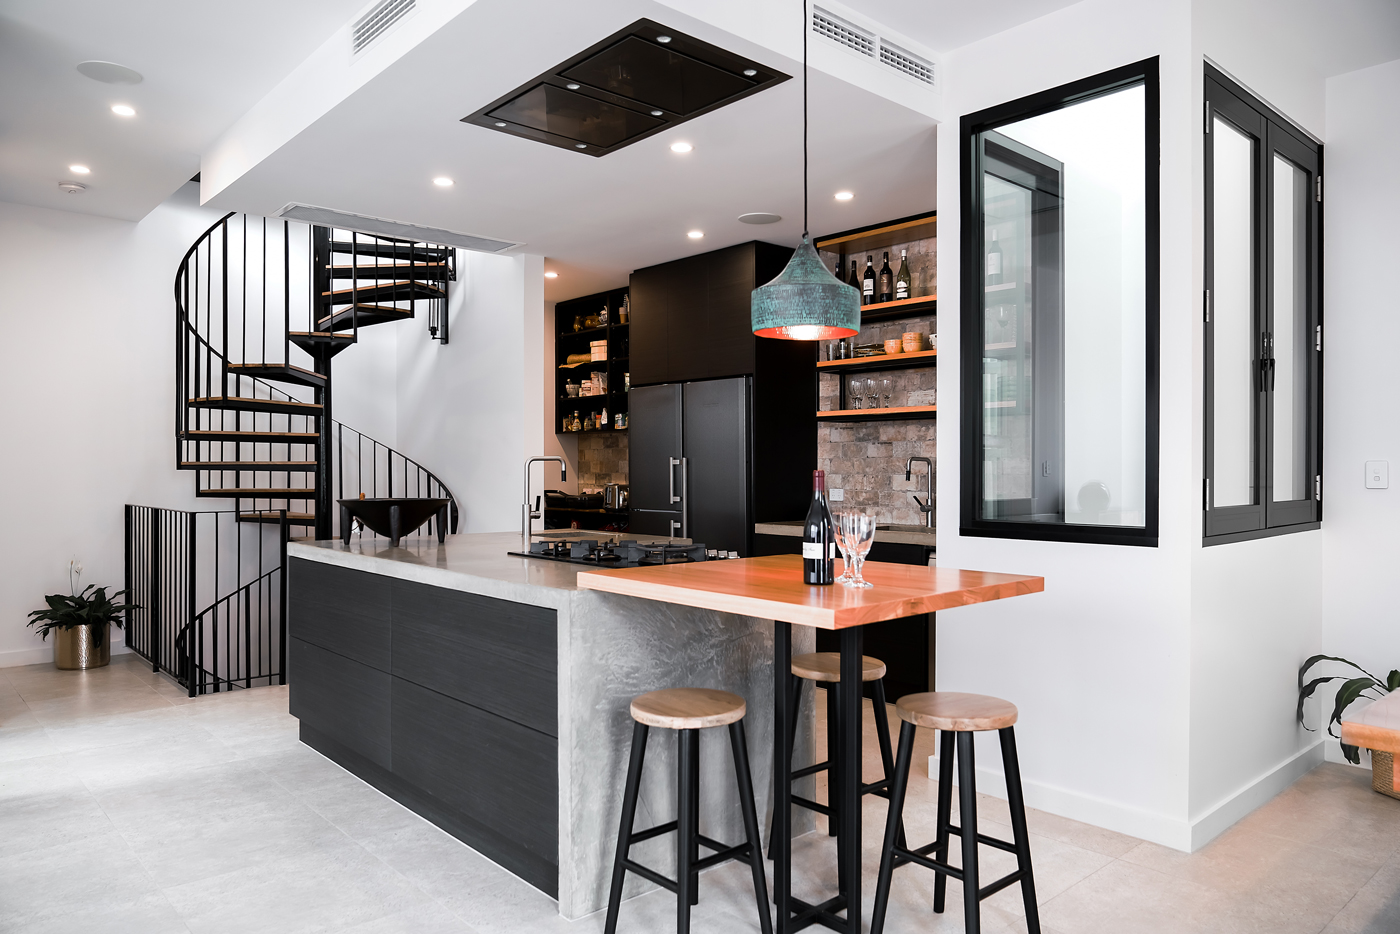 This project was a major renovation to an inner-city townhouse, the clients were after an industrial feel to the interior and kitchen cabinetry.